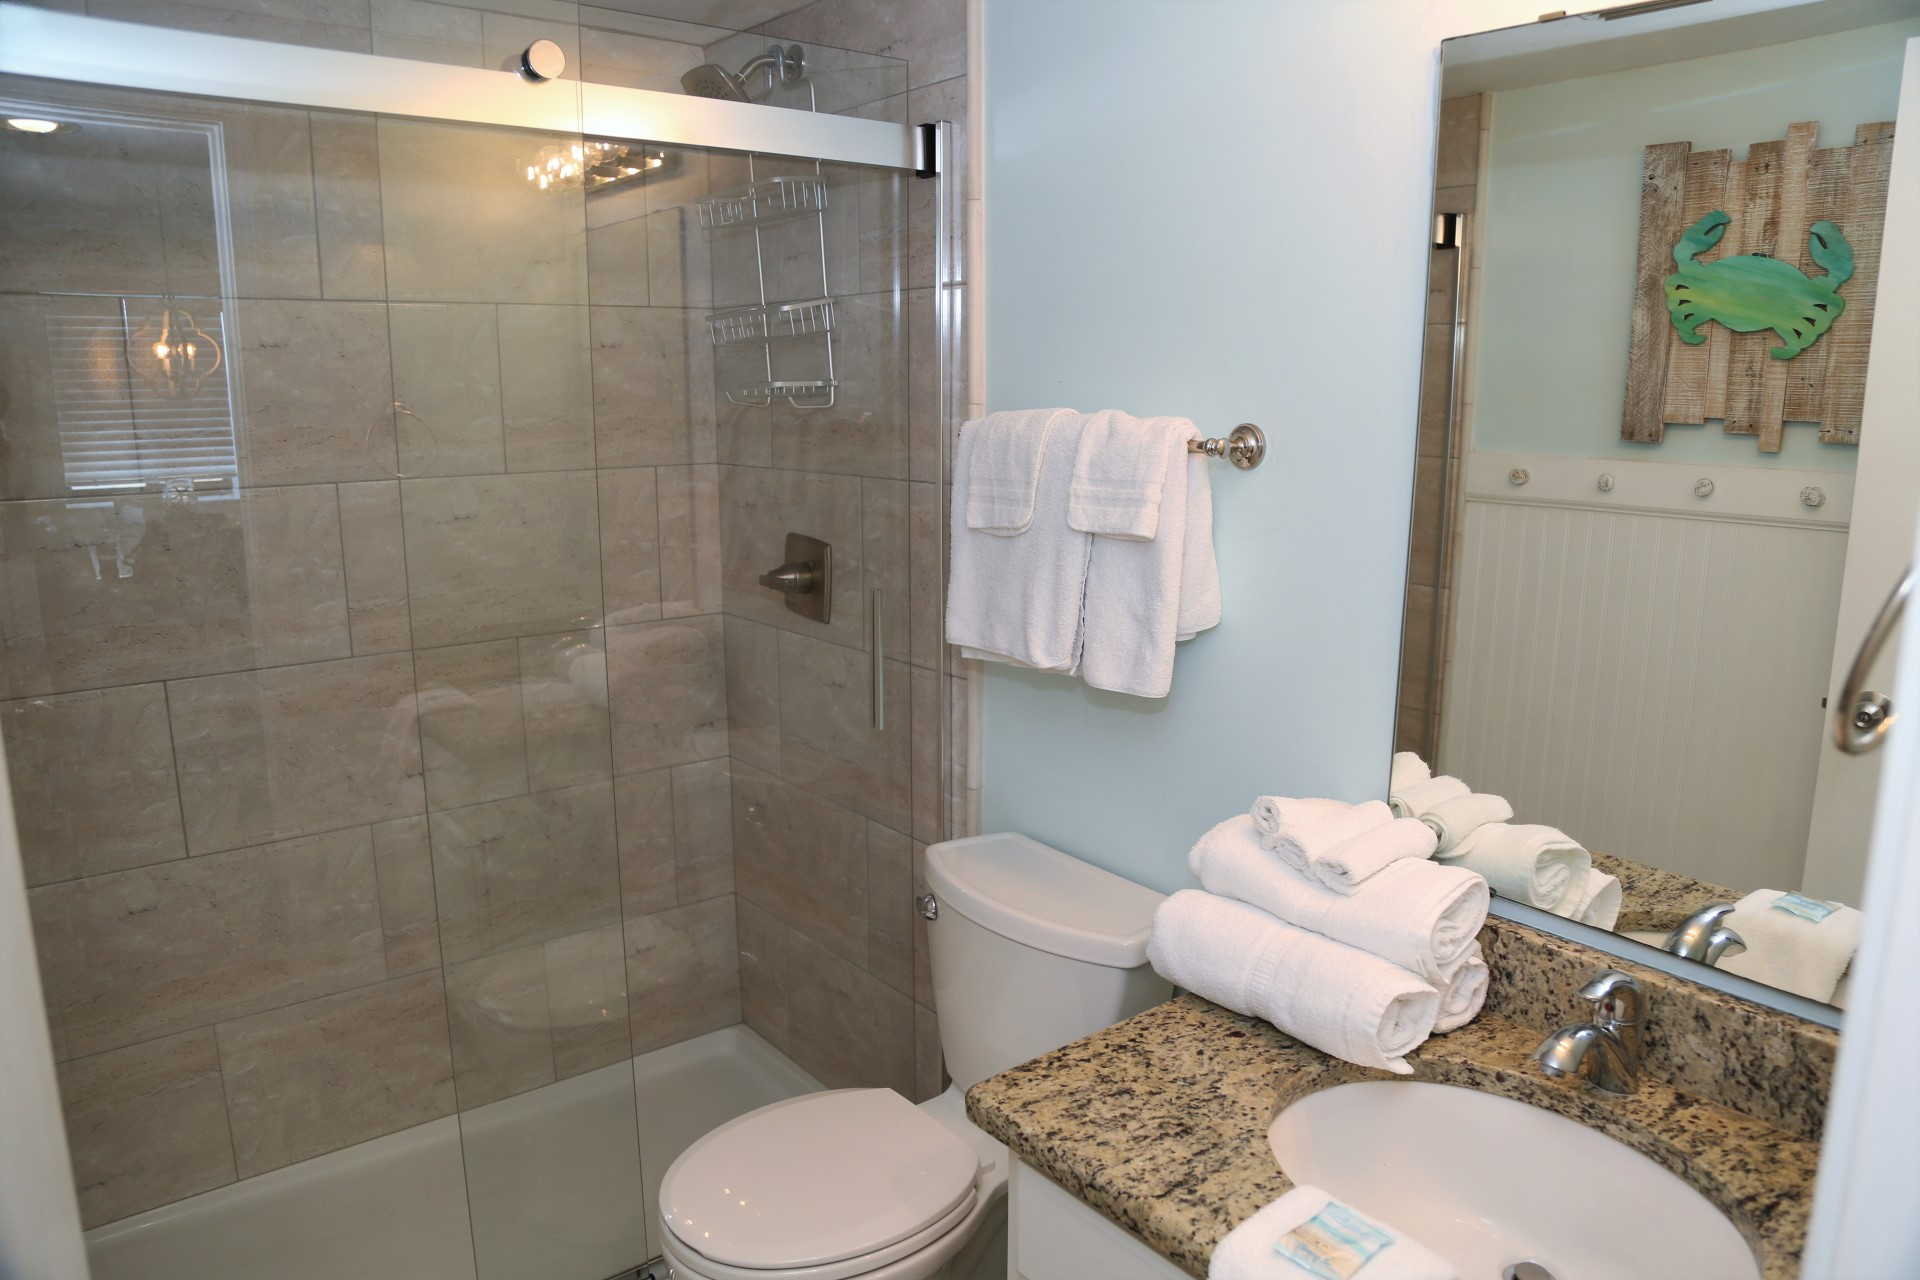 Tropical Winds 304 - Hall bathroom with tiled shower